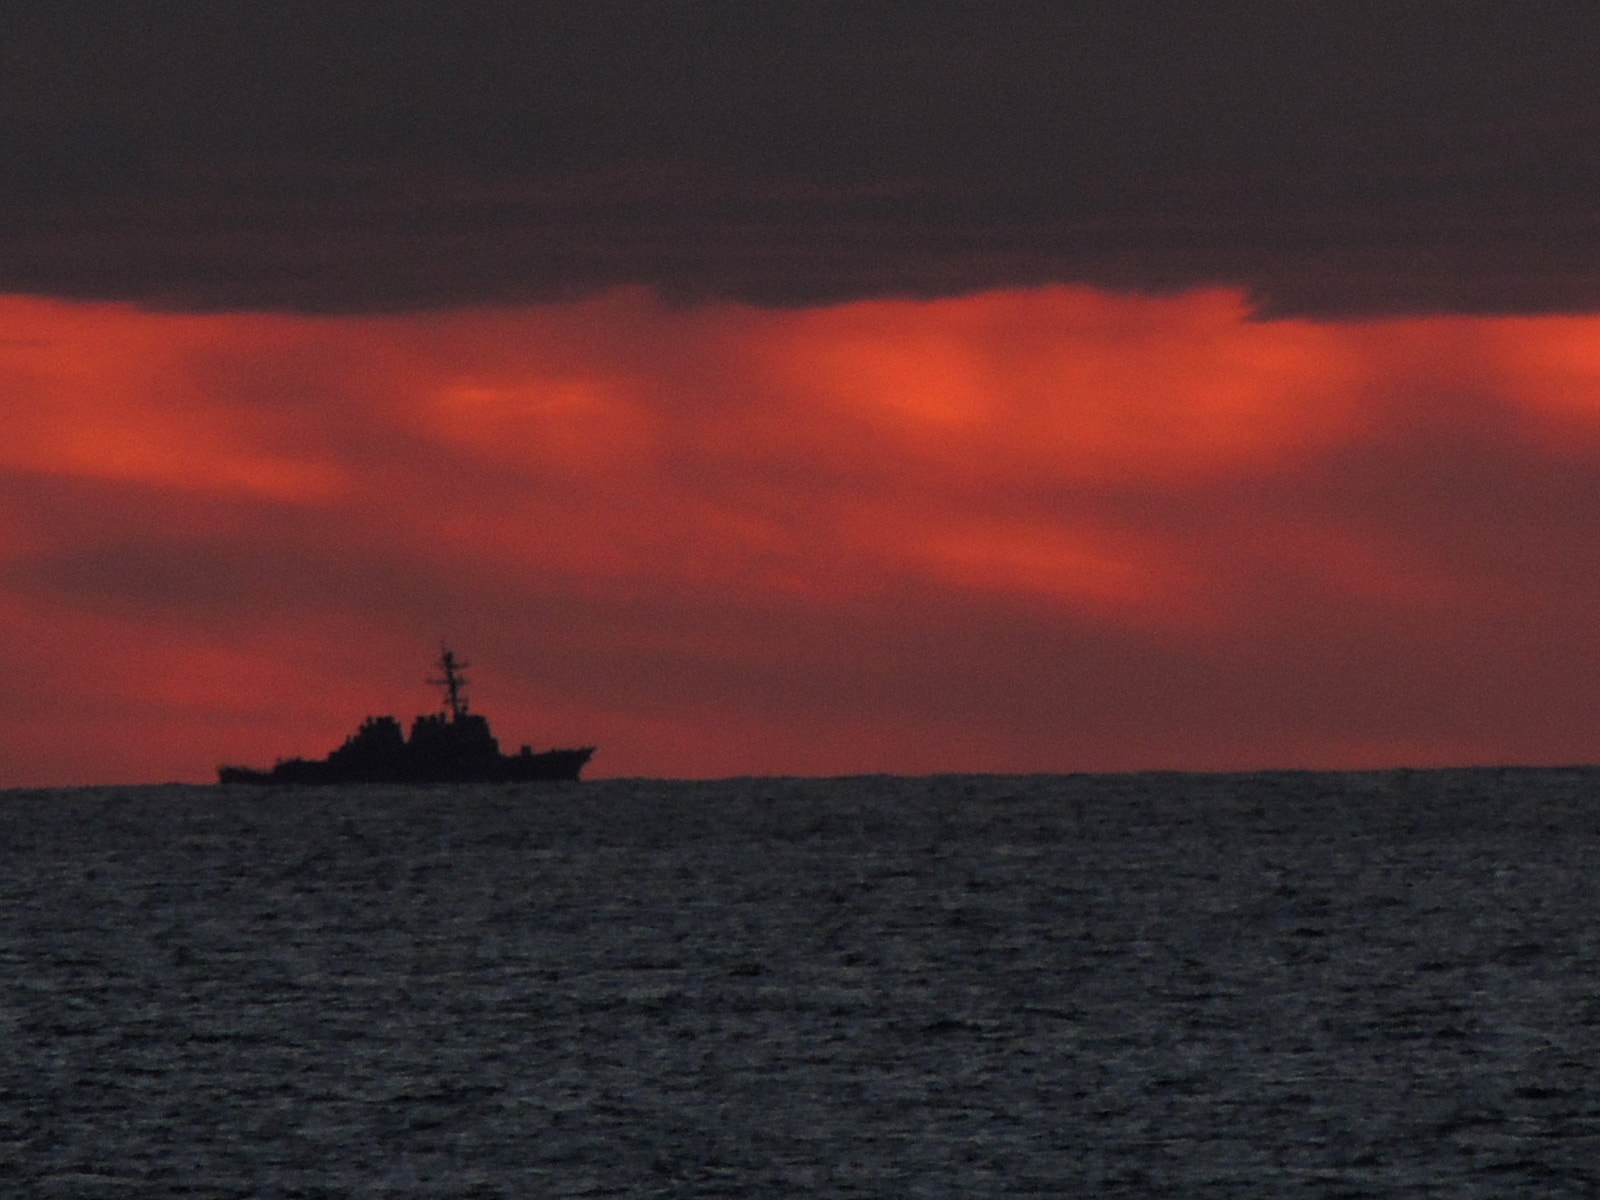 Photograph Warship by Alan Wells on 500px